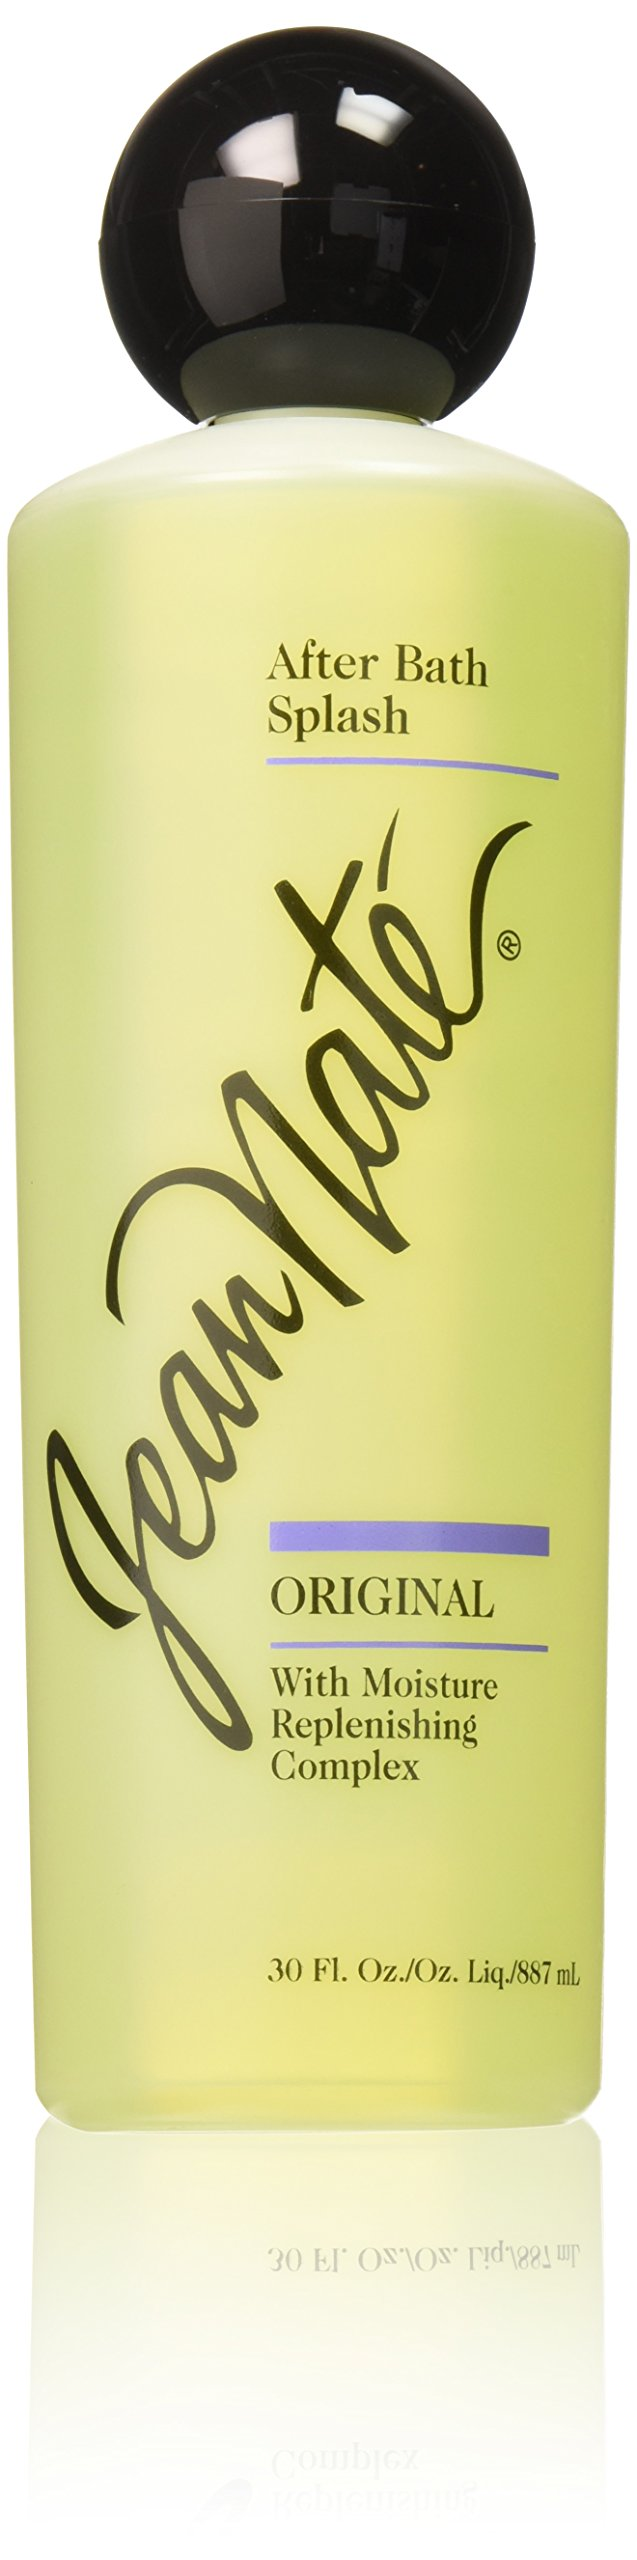 Jean Nate After Bath Splash, Original - 30 Oz